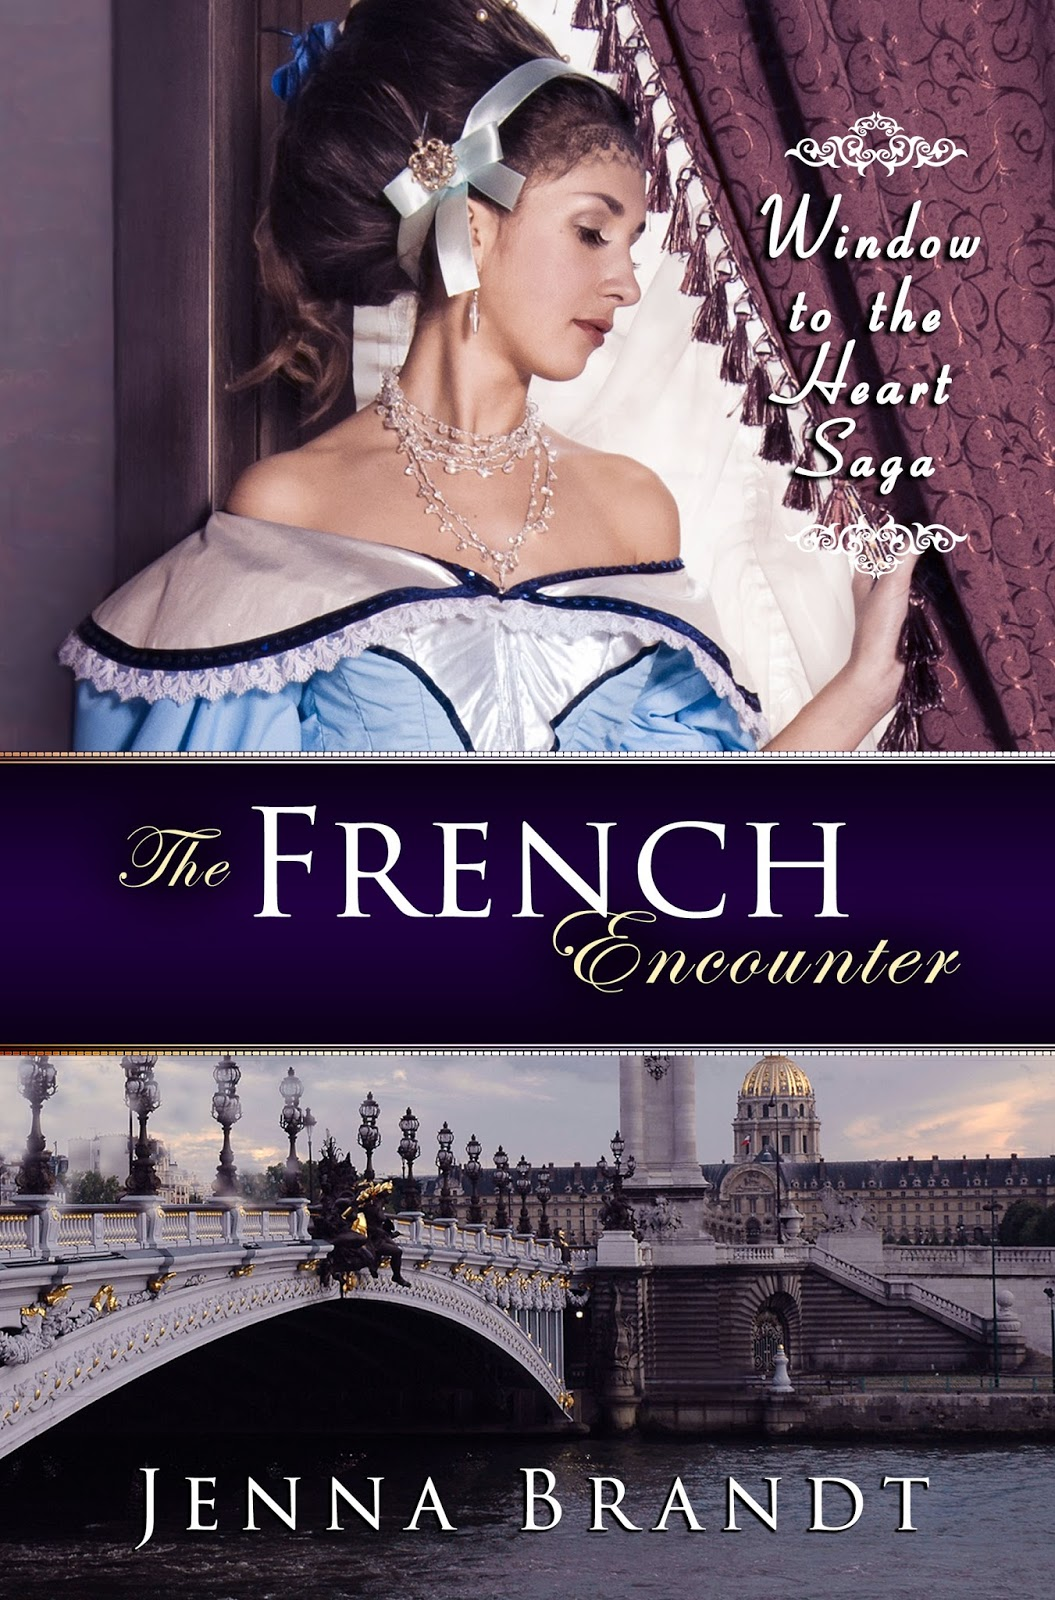 Jenna brandt books wtths books book 2 the french encounter ruined by a night she will never forget lady margaret countess of renwick must flee from england with her infant son to fandeluxe Document